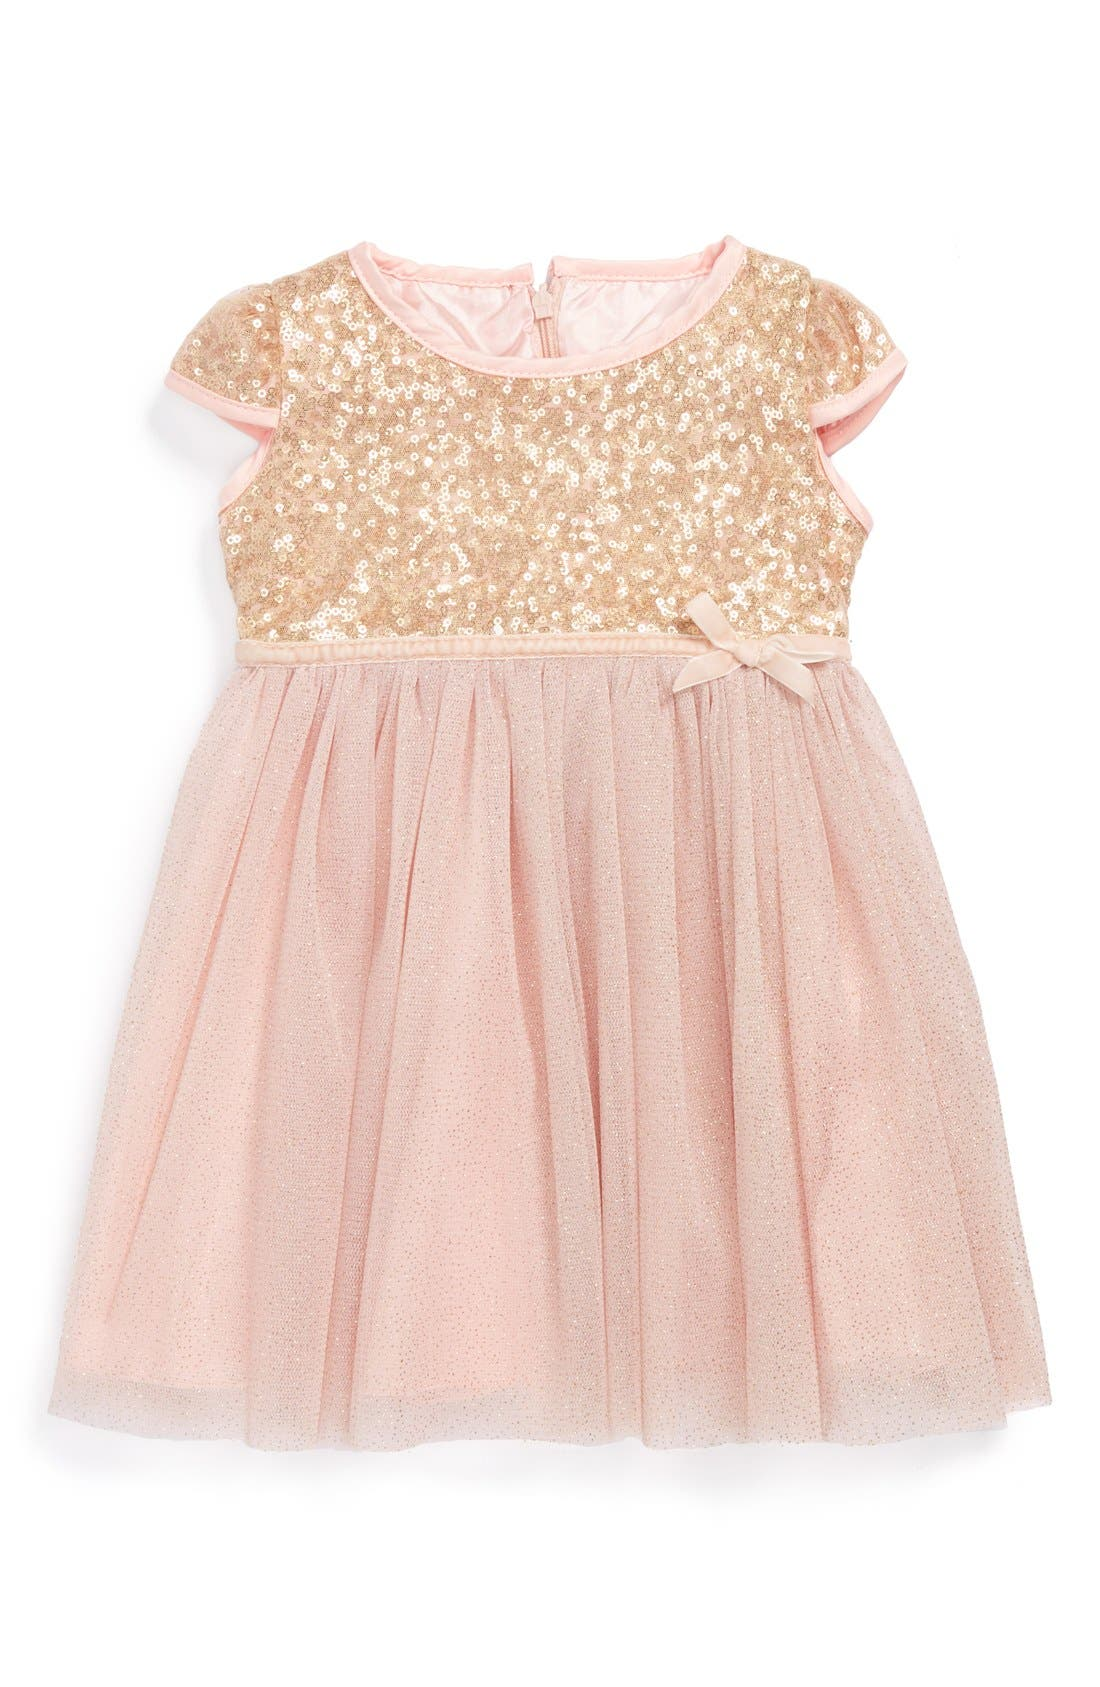 Alternate Image 1 Selected - Dorissa Tulle Sequin Dress (Baby Girls)